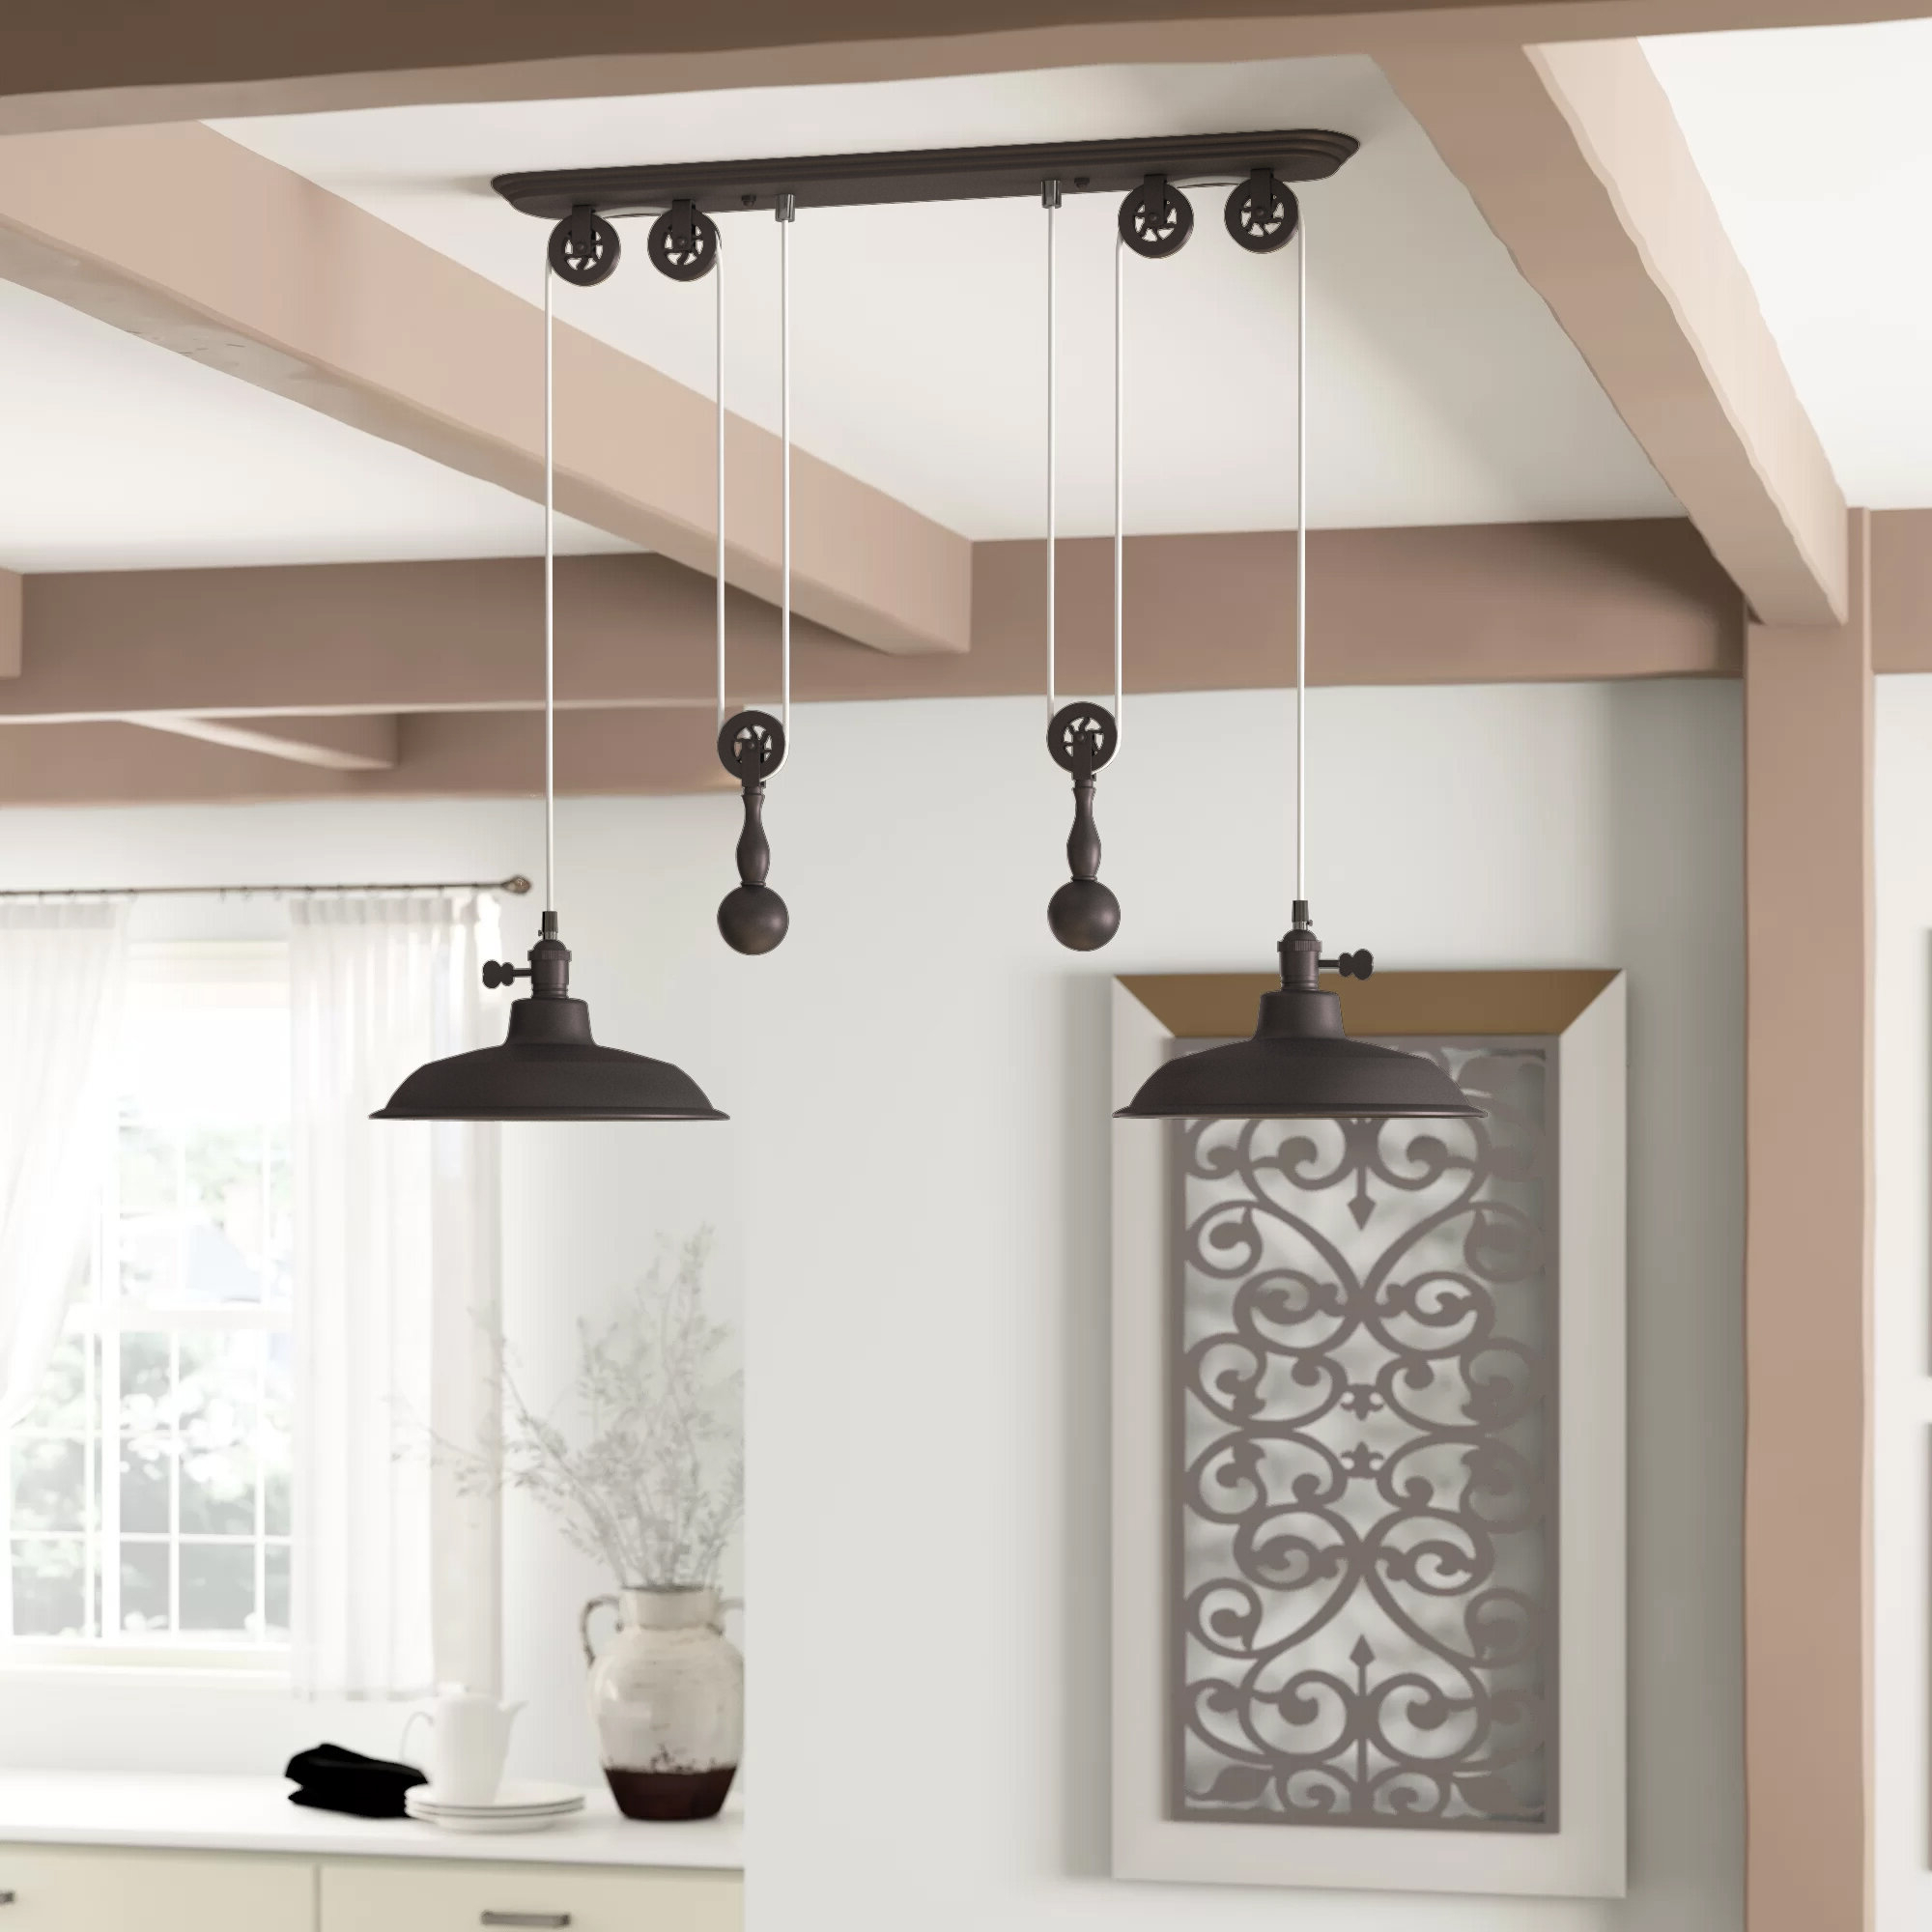 Ariel 2 Light Kitchen Island Dome Pendants In Most Up To Date Ariel 2 Light Kitchen Island Dome Pendant (View 4 of 20)